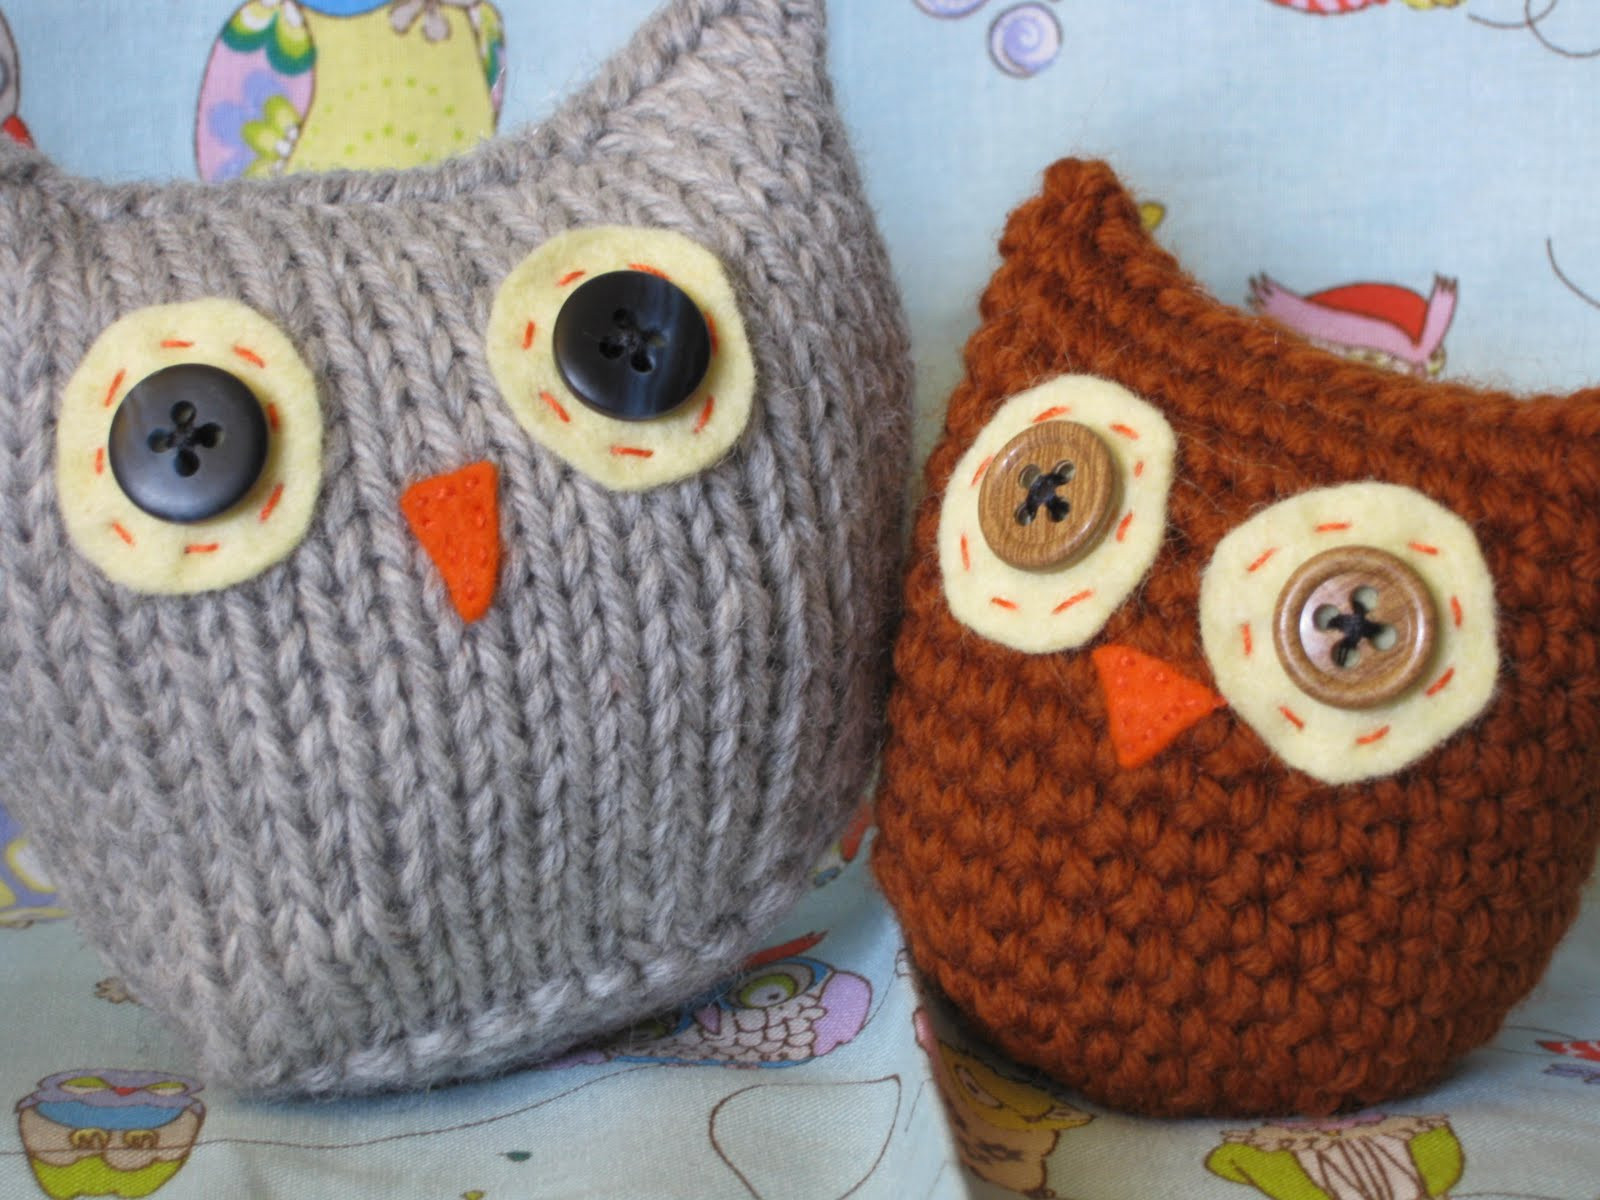 Knitting and Crochet Awesome Free Crochet Owl Pattern Crochet and Knitting Patterns Of Amazing 45 Photos Knitting and Crochet